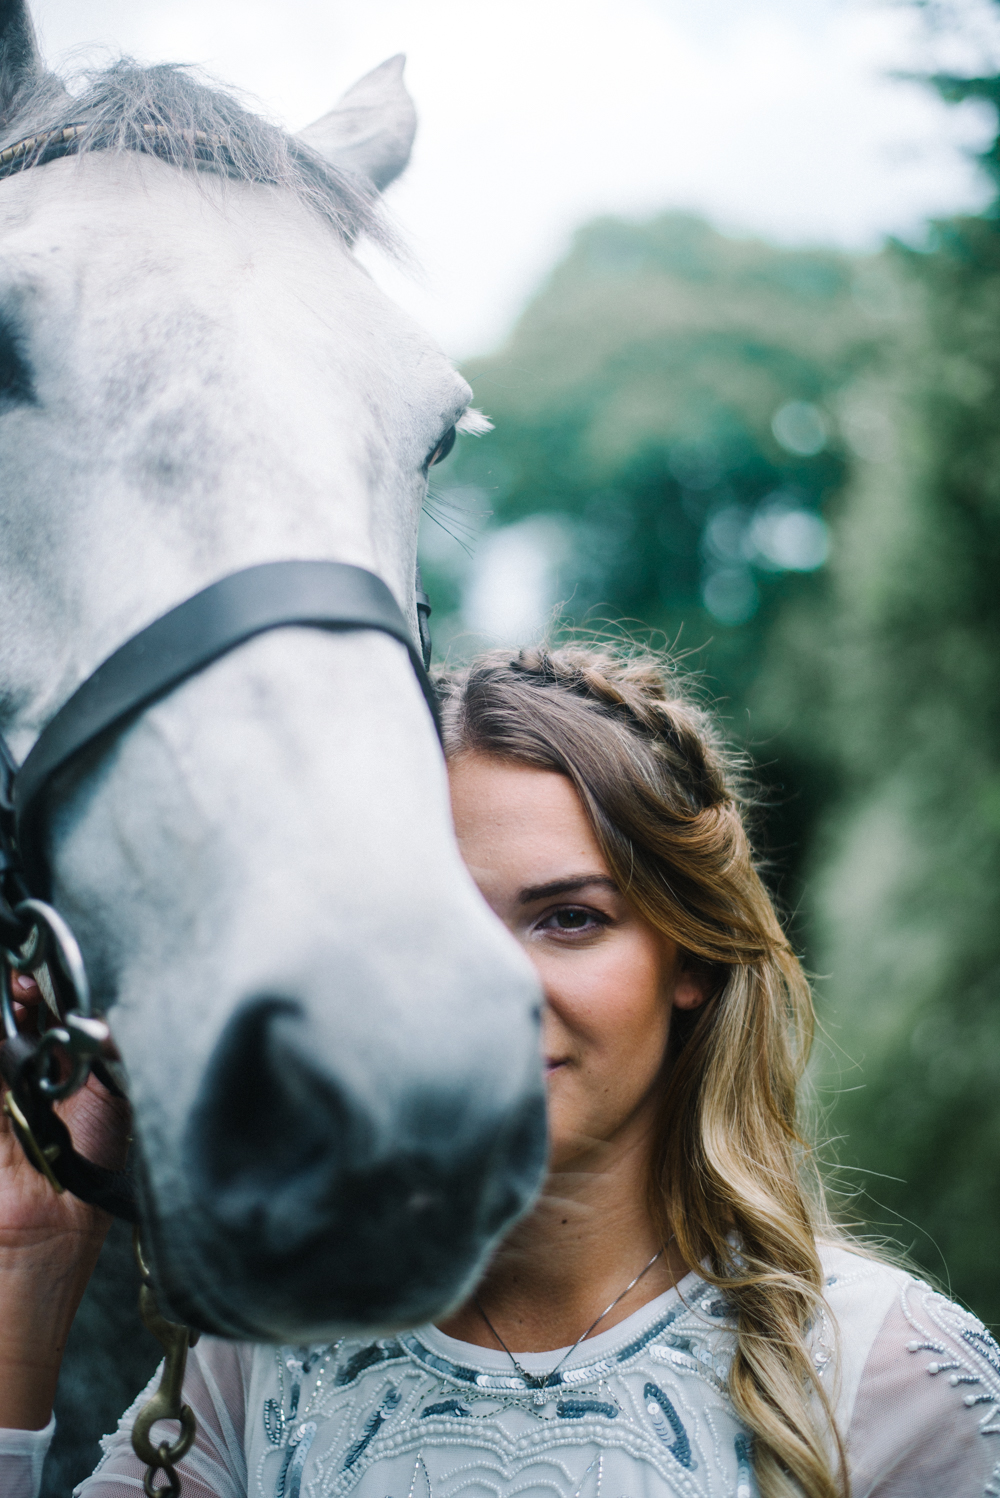 For The Love Of Horses // An Editorial // www.oliviabossert.com // equine, horse fashion photography, horse photography, horse and girl, horse and model, equine fashion, cornwall, UK